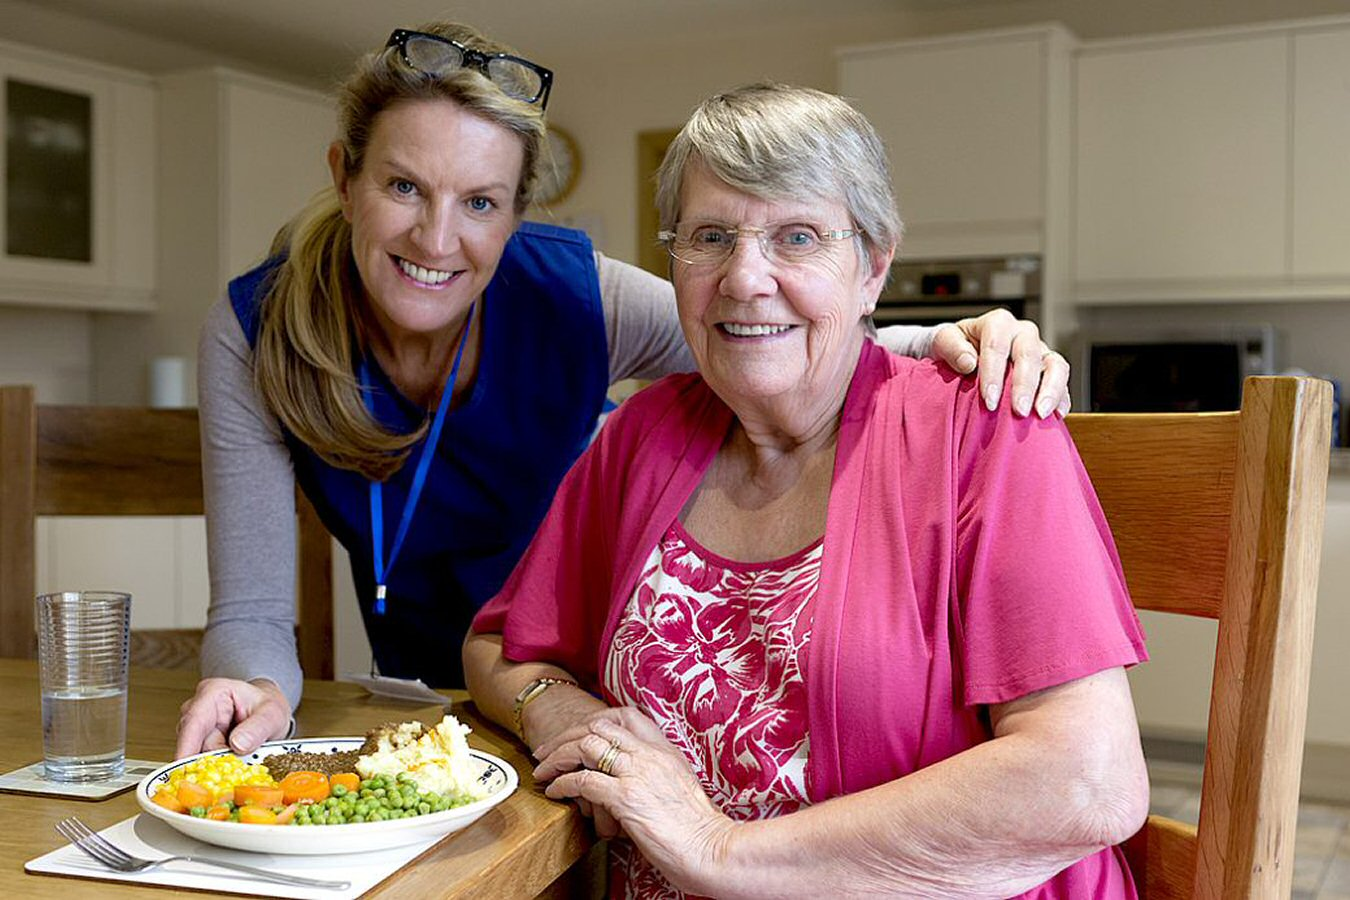 delivering meals is a great way to help an injured loved one